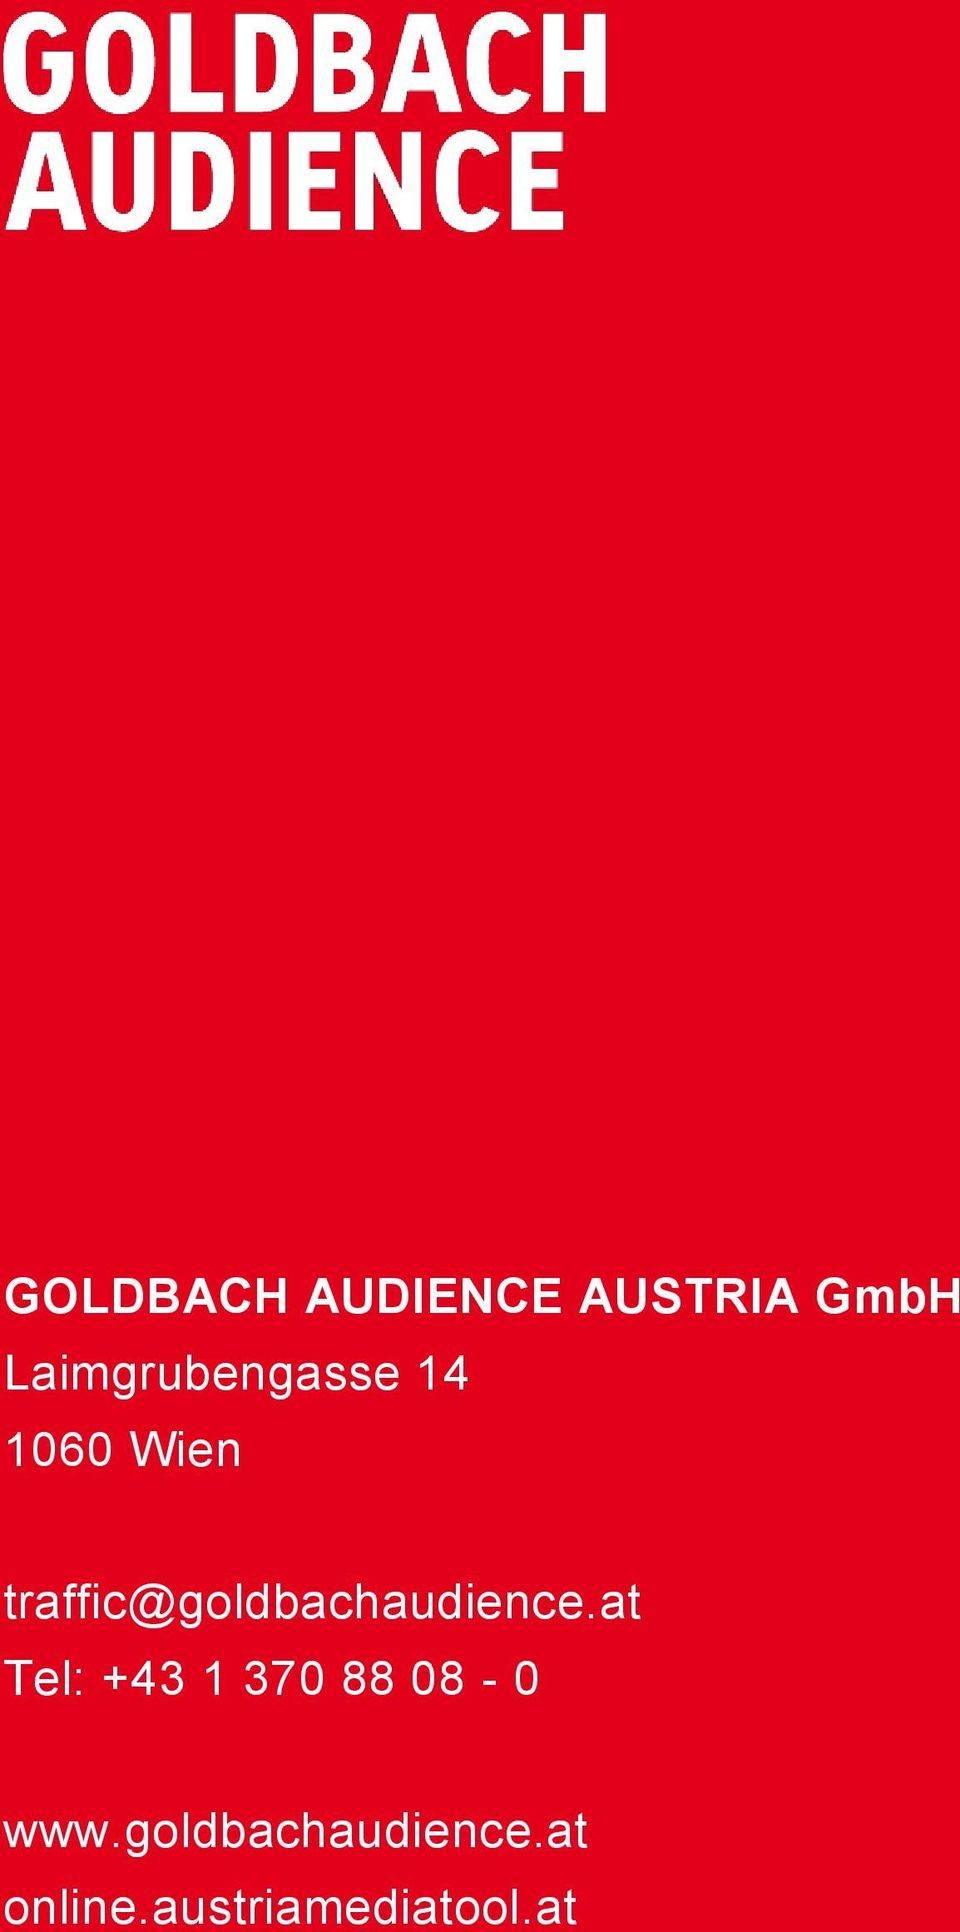 traffic@goldbachaudience.